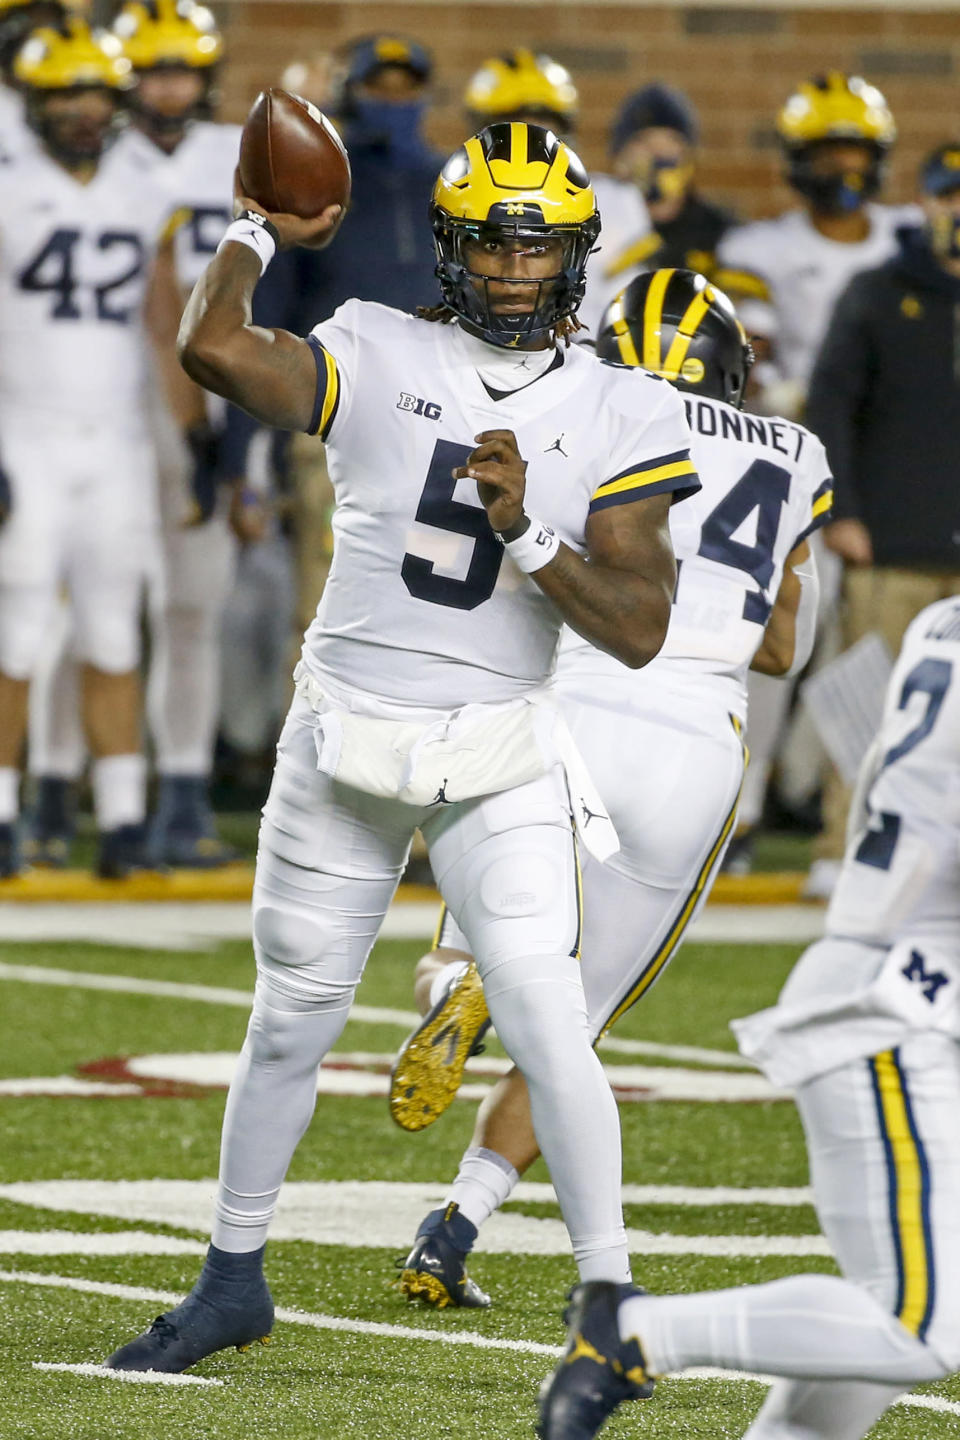 Michigan quarterback Joe Milton passes against Minnesota in the first quarter of an NCAA college football game Saturday, Oct. 24, 2020, in Minneapolis. (AP Photo/Bruce Kluckhohn)